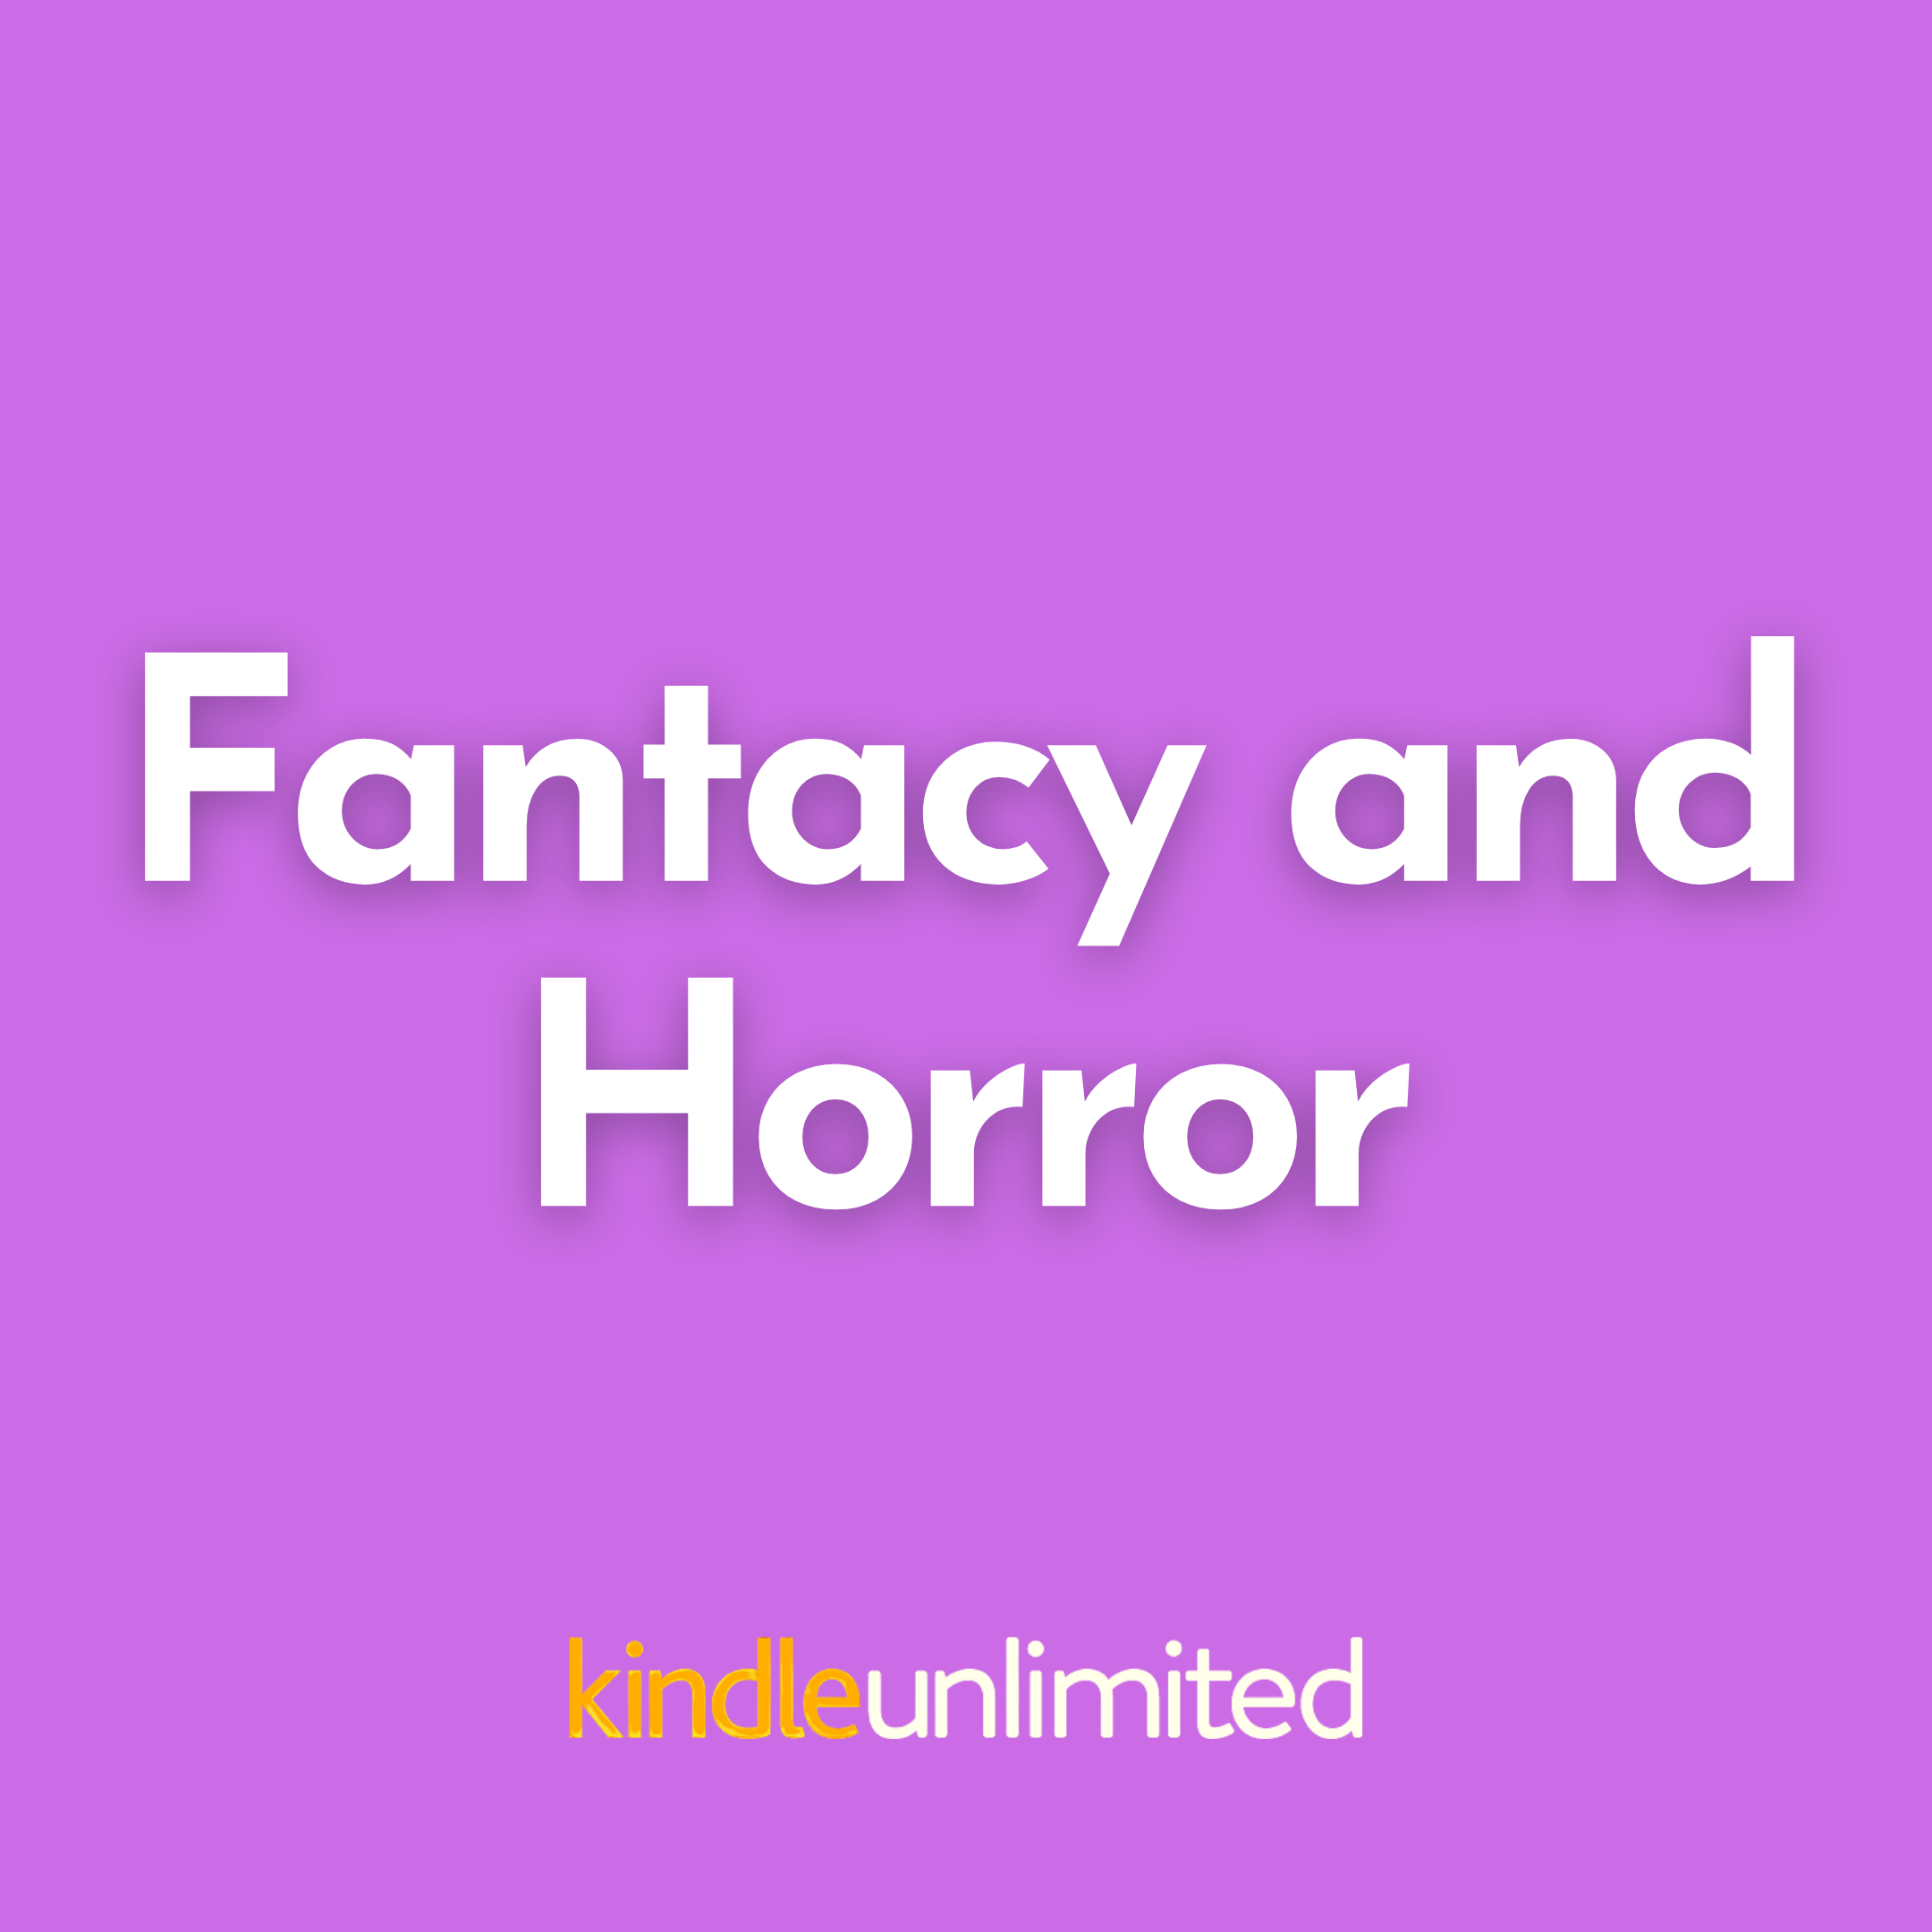 Book Collections | Kindle Unlimited Collection